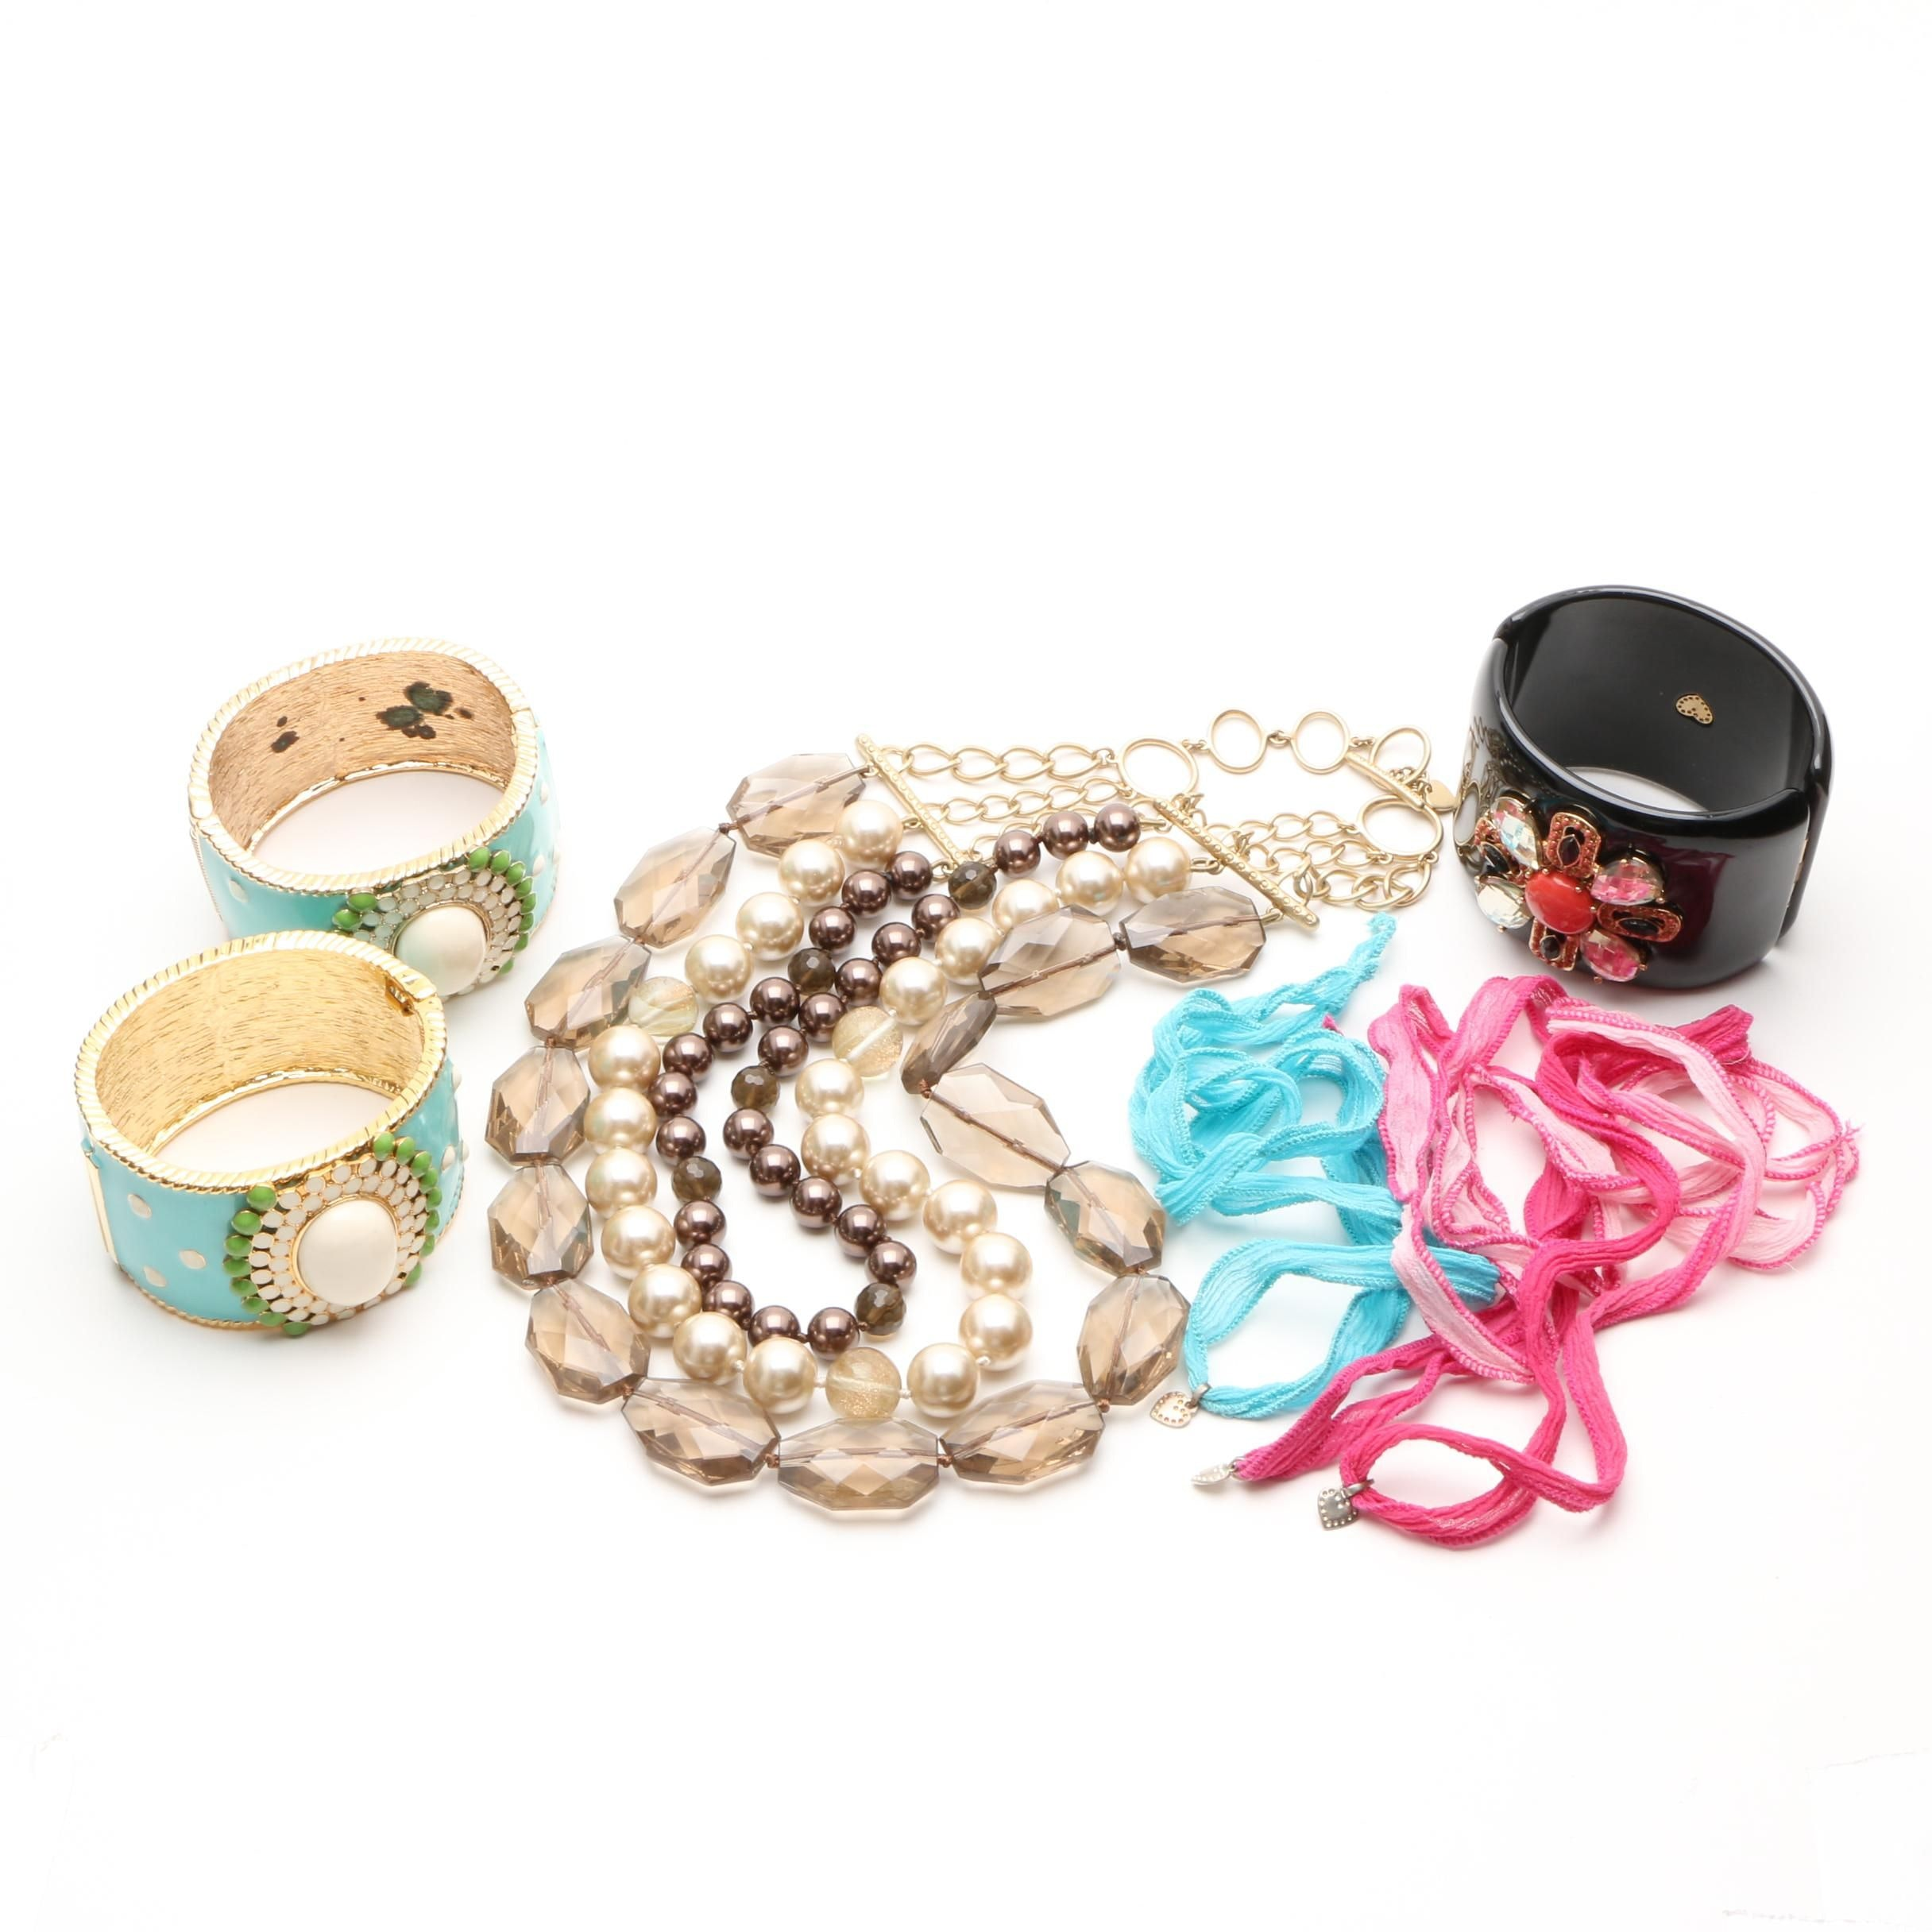 Stella and Dot Necklaces and Bracelets Including Enamel, Glass, and Resin